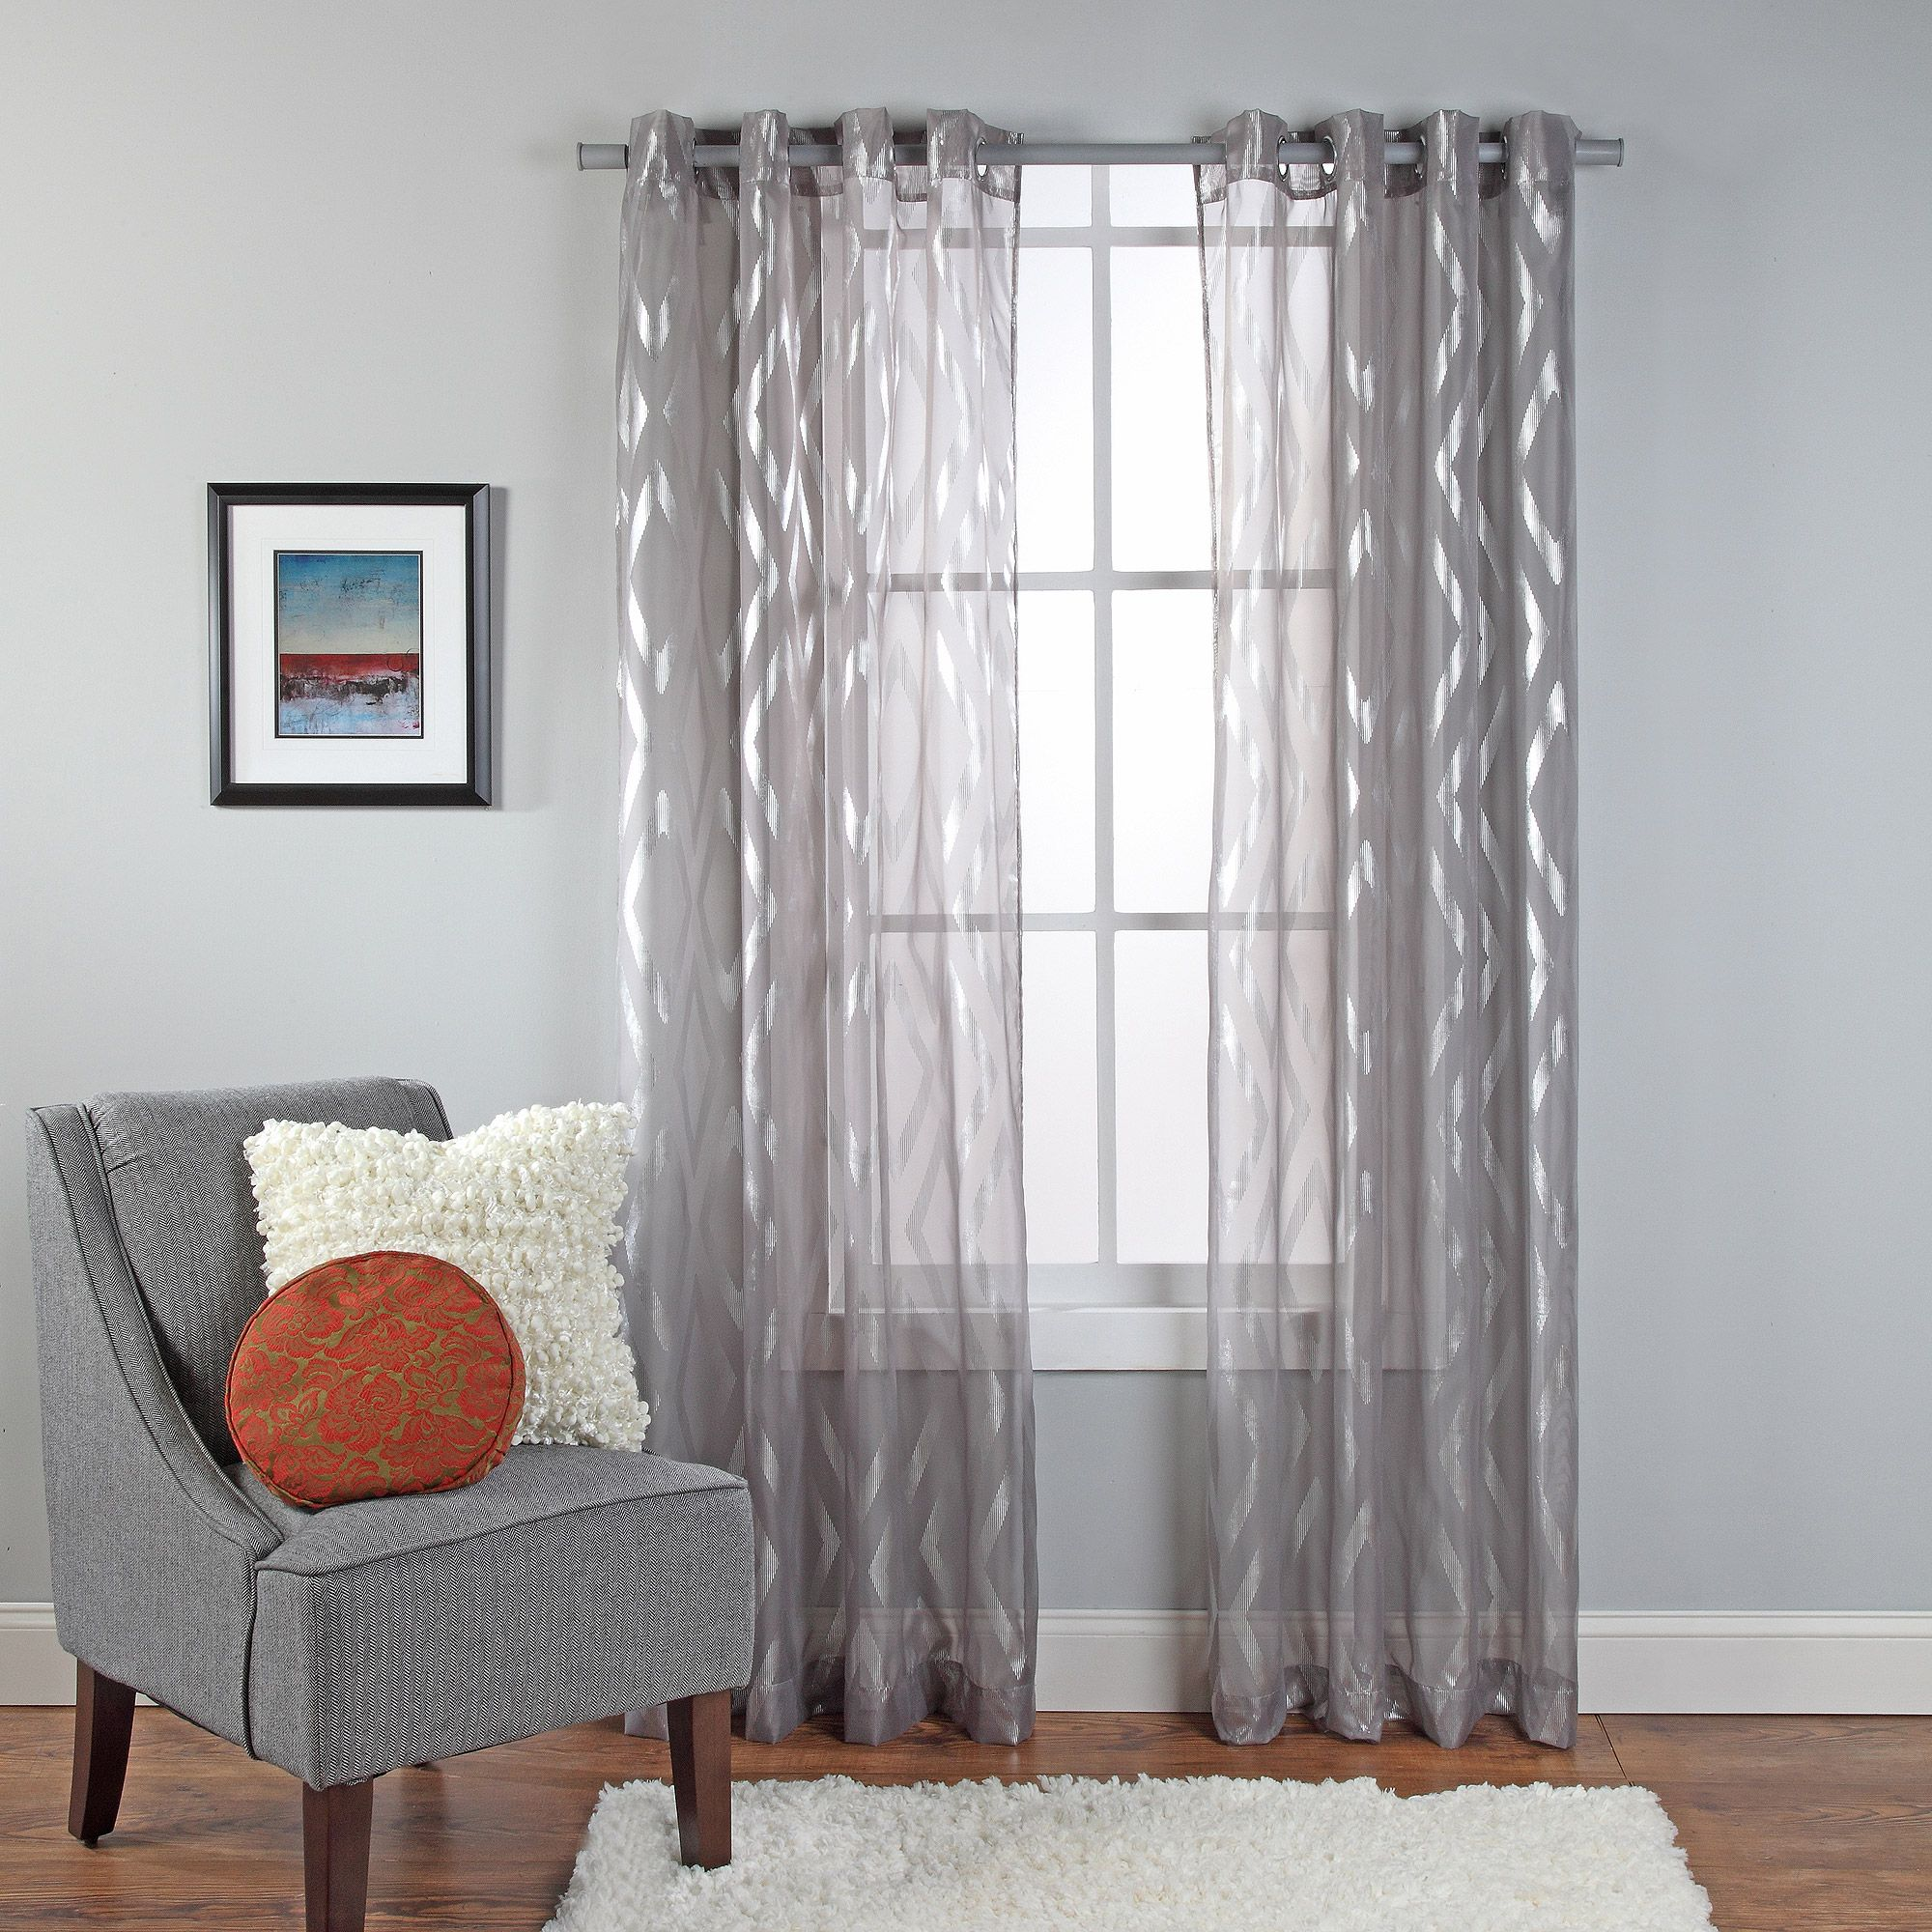 Delancey Metallic Print Sheer Grommet Window Panel | Ks | Pinterest ...